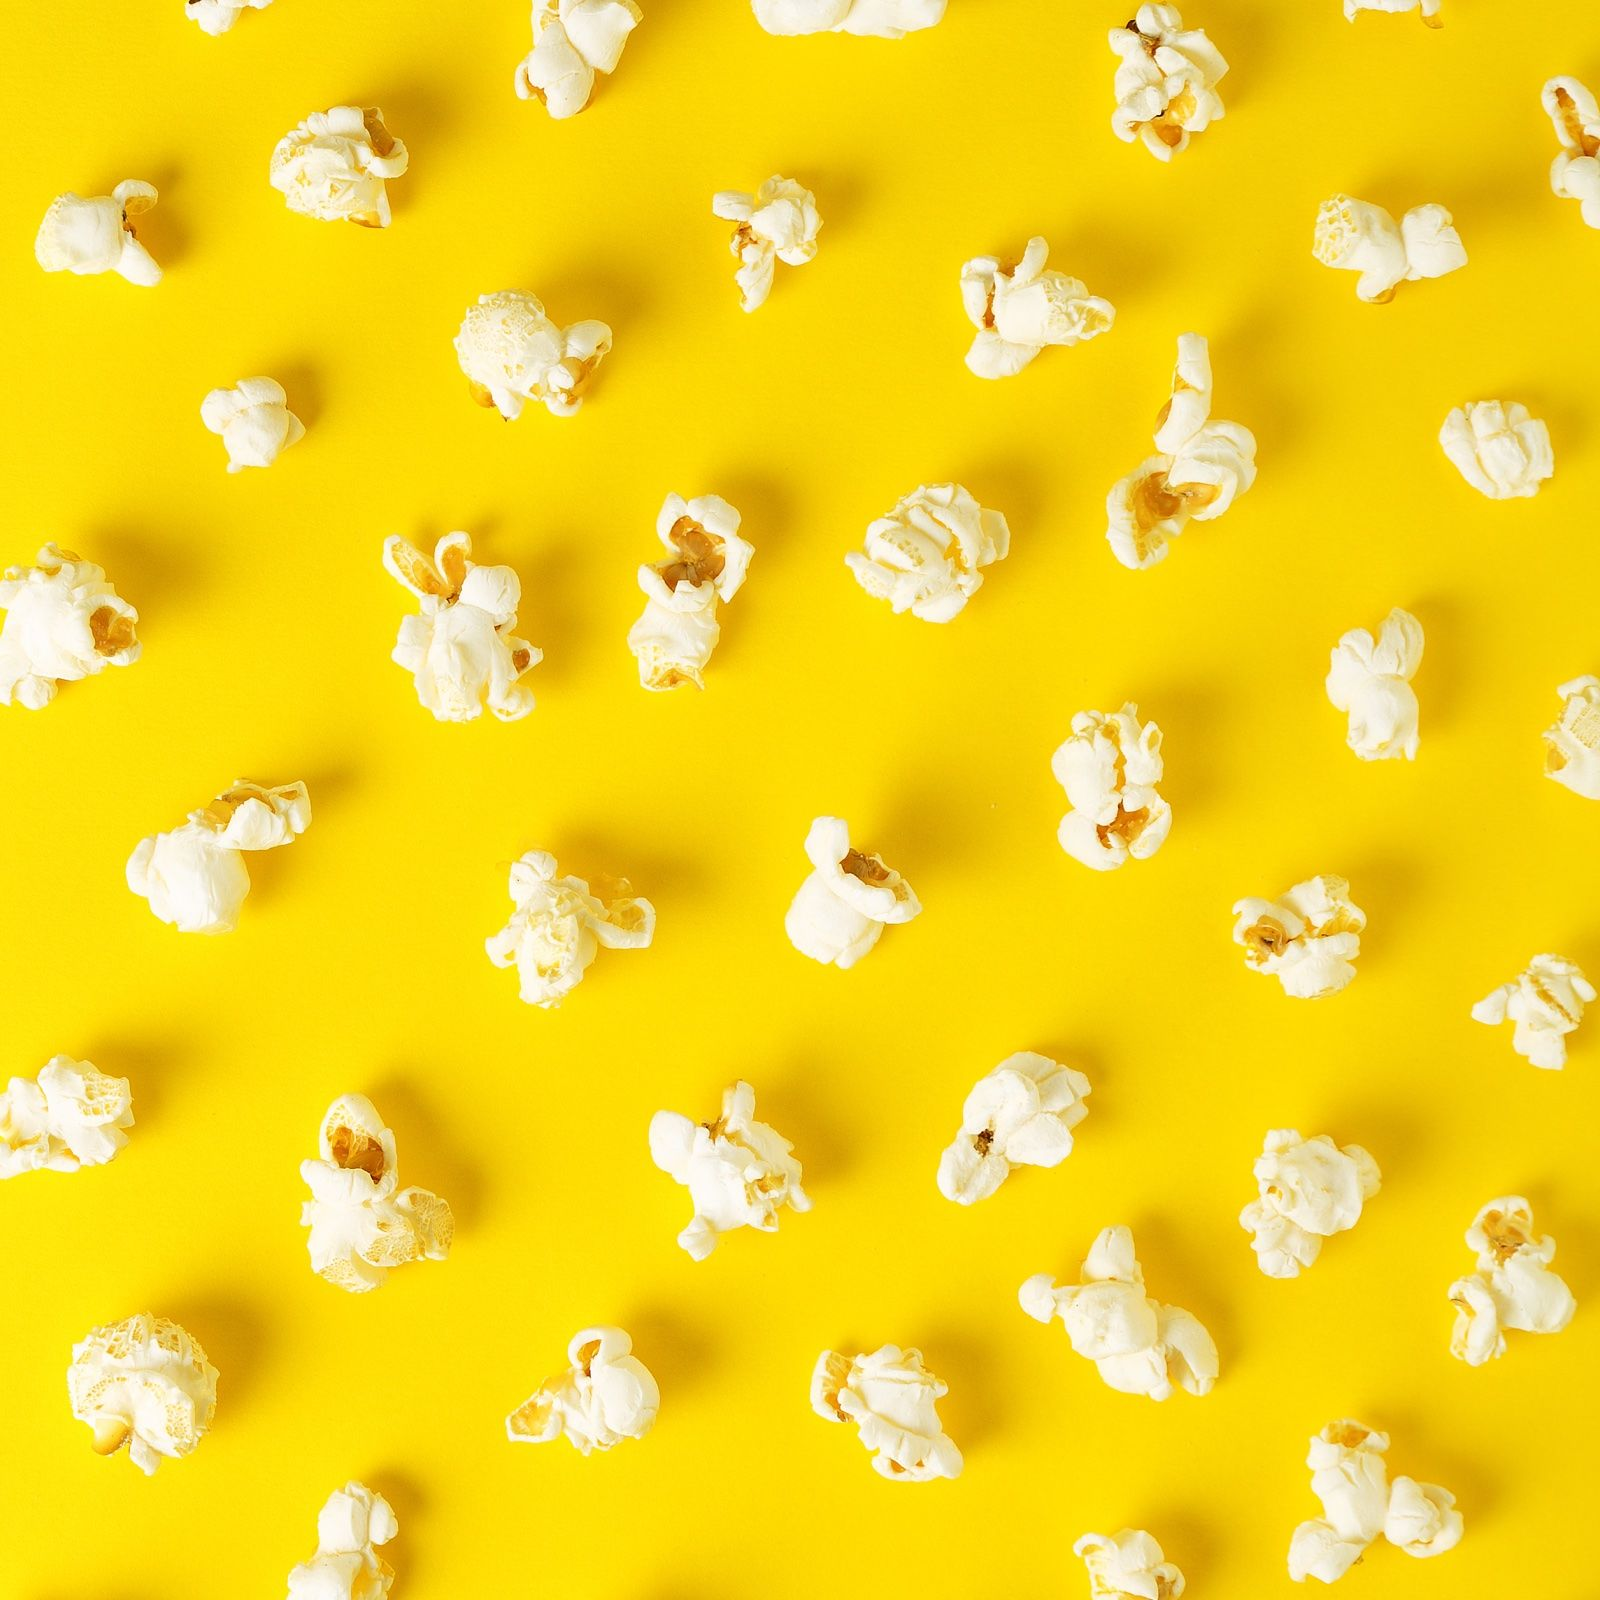 Creative services capability popcorn image